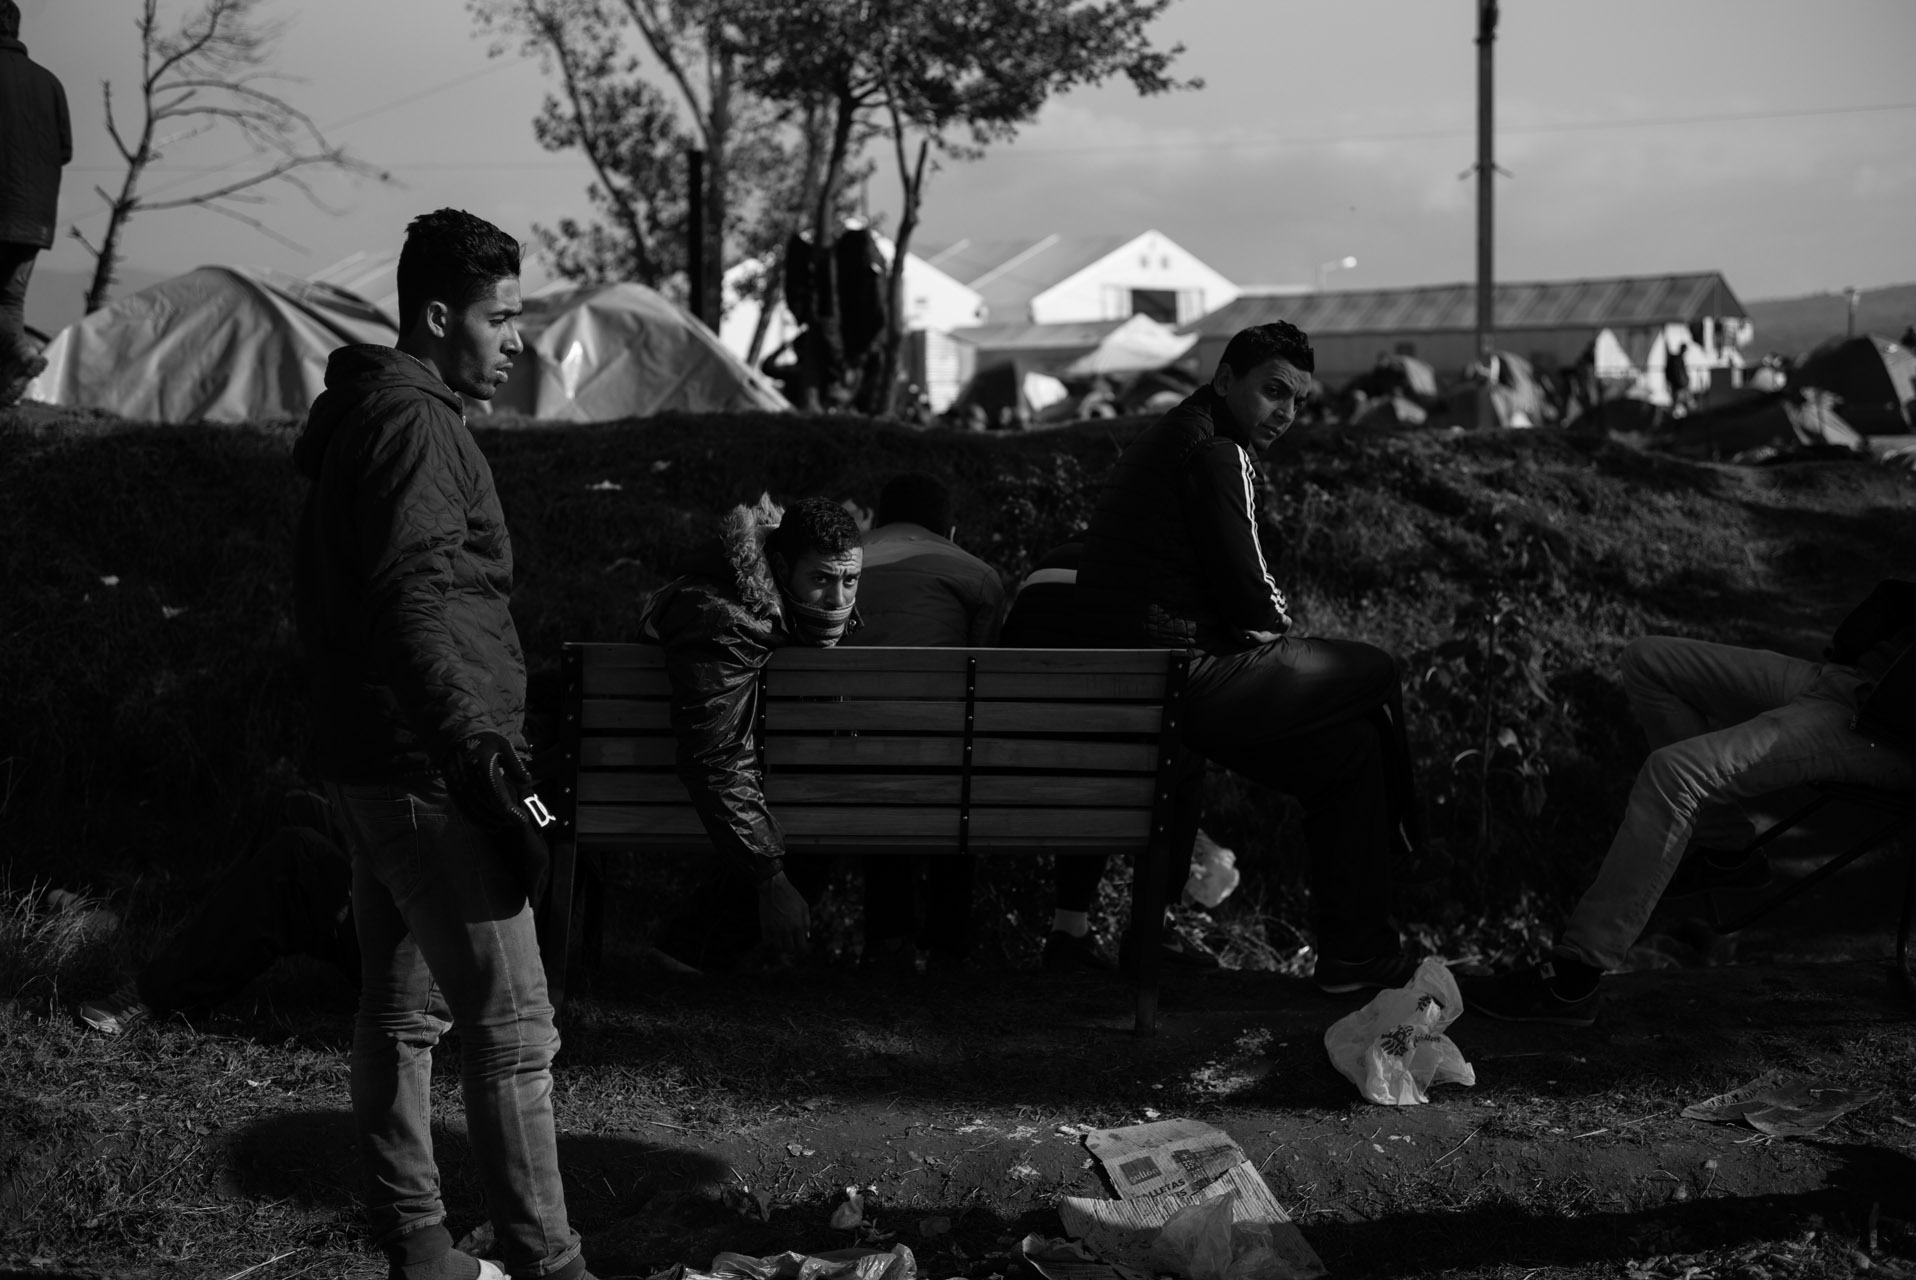 Saturday, December 5. 2015 in Idomeni, Greece.